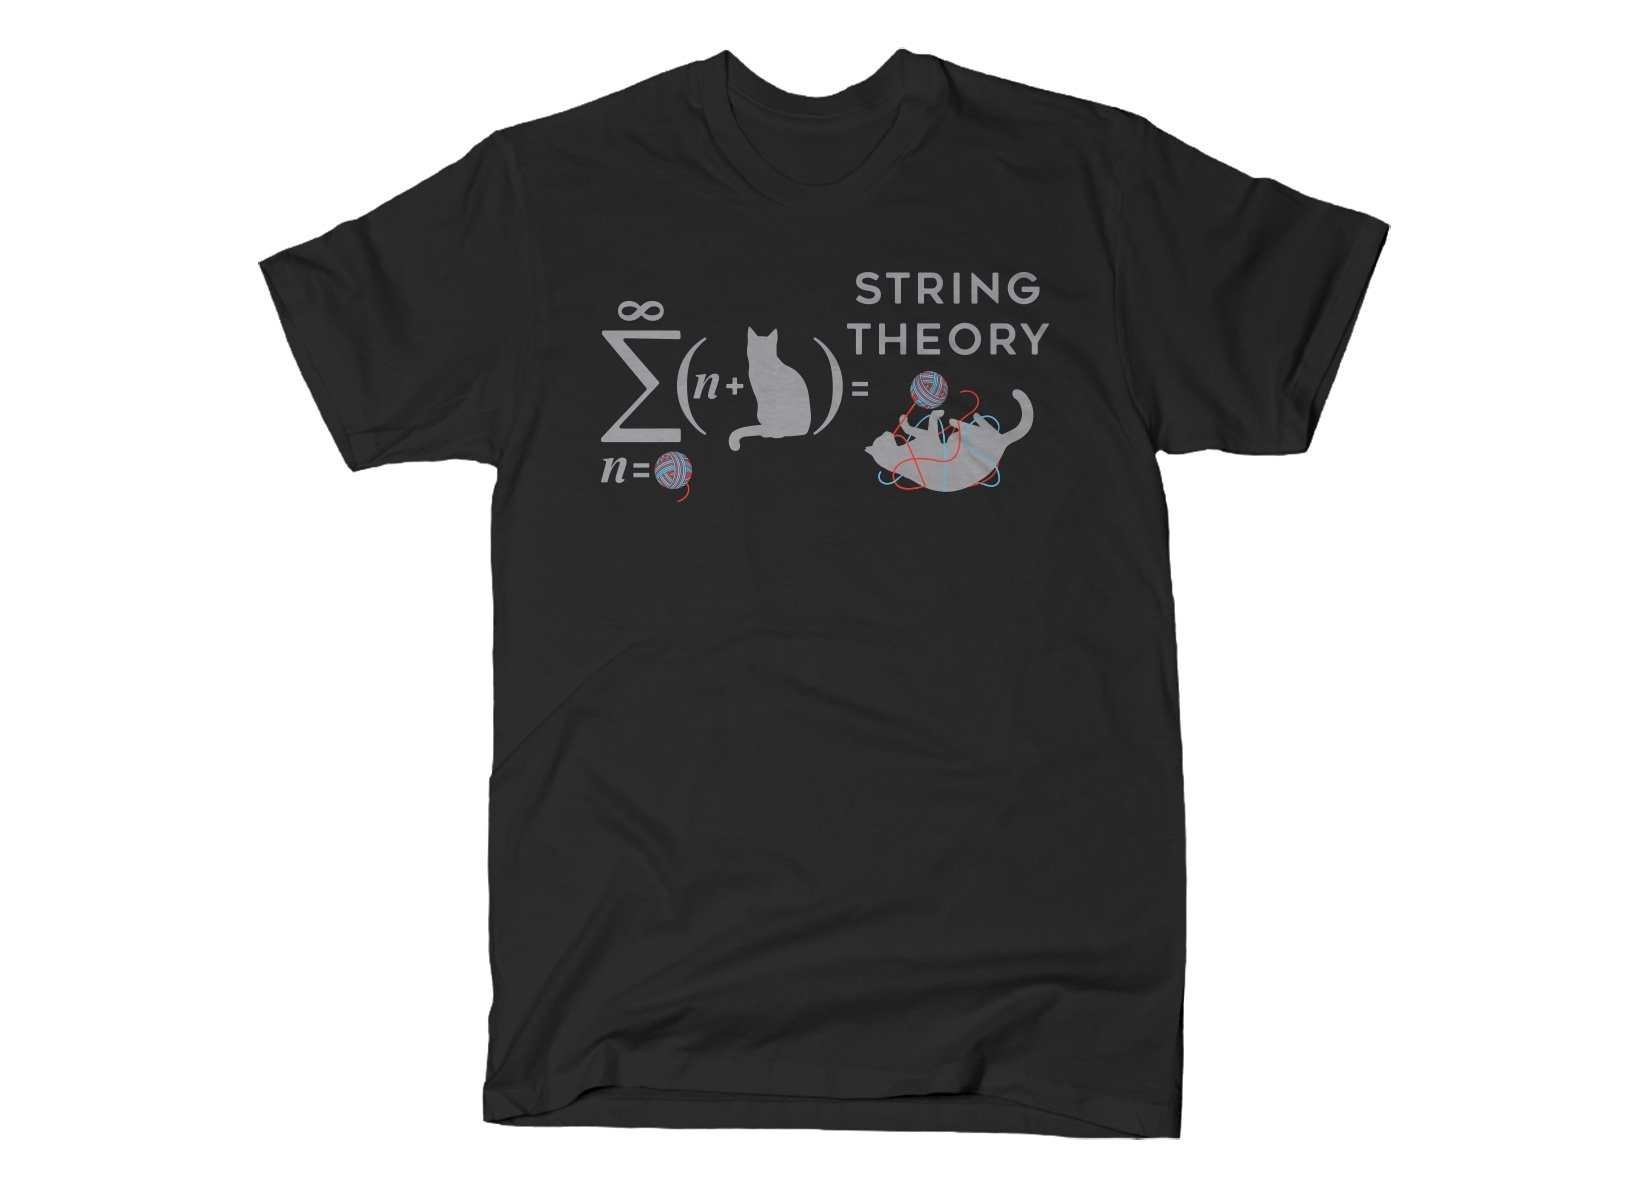 String Theory on Mens T-Shirt